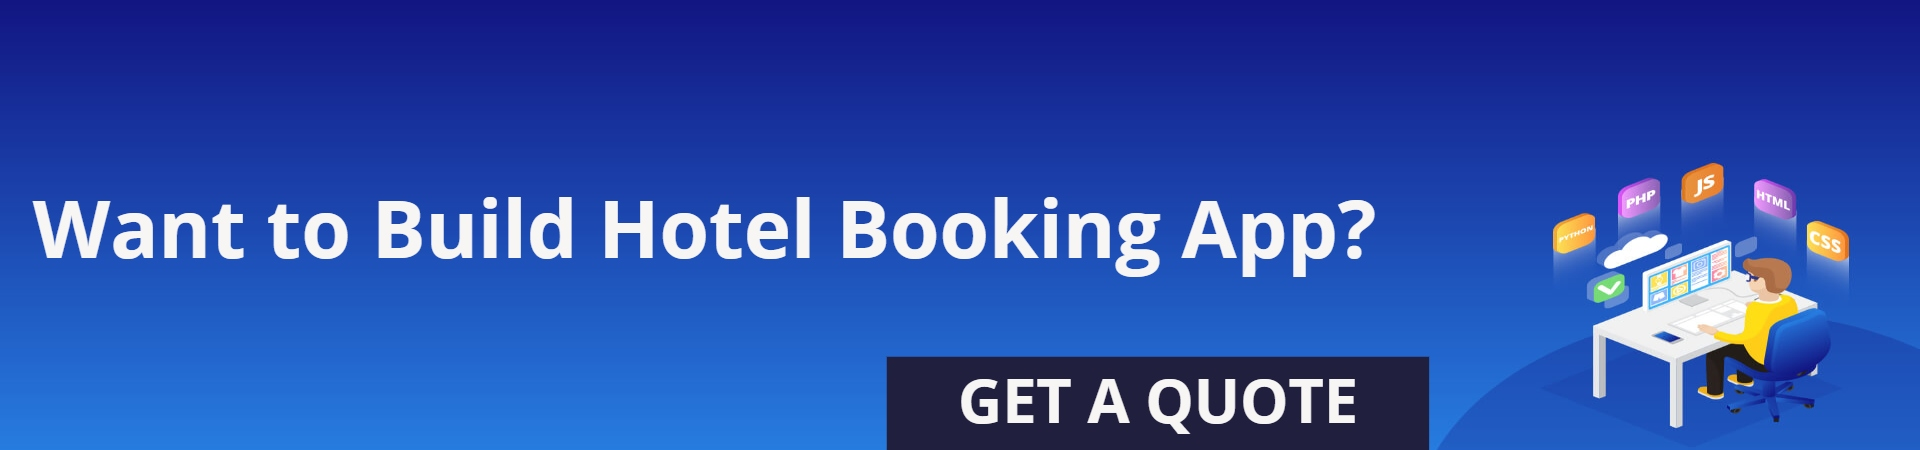 Hotel Booking App Development cost